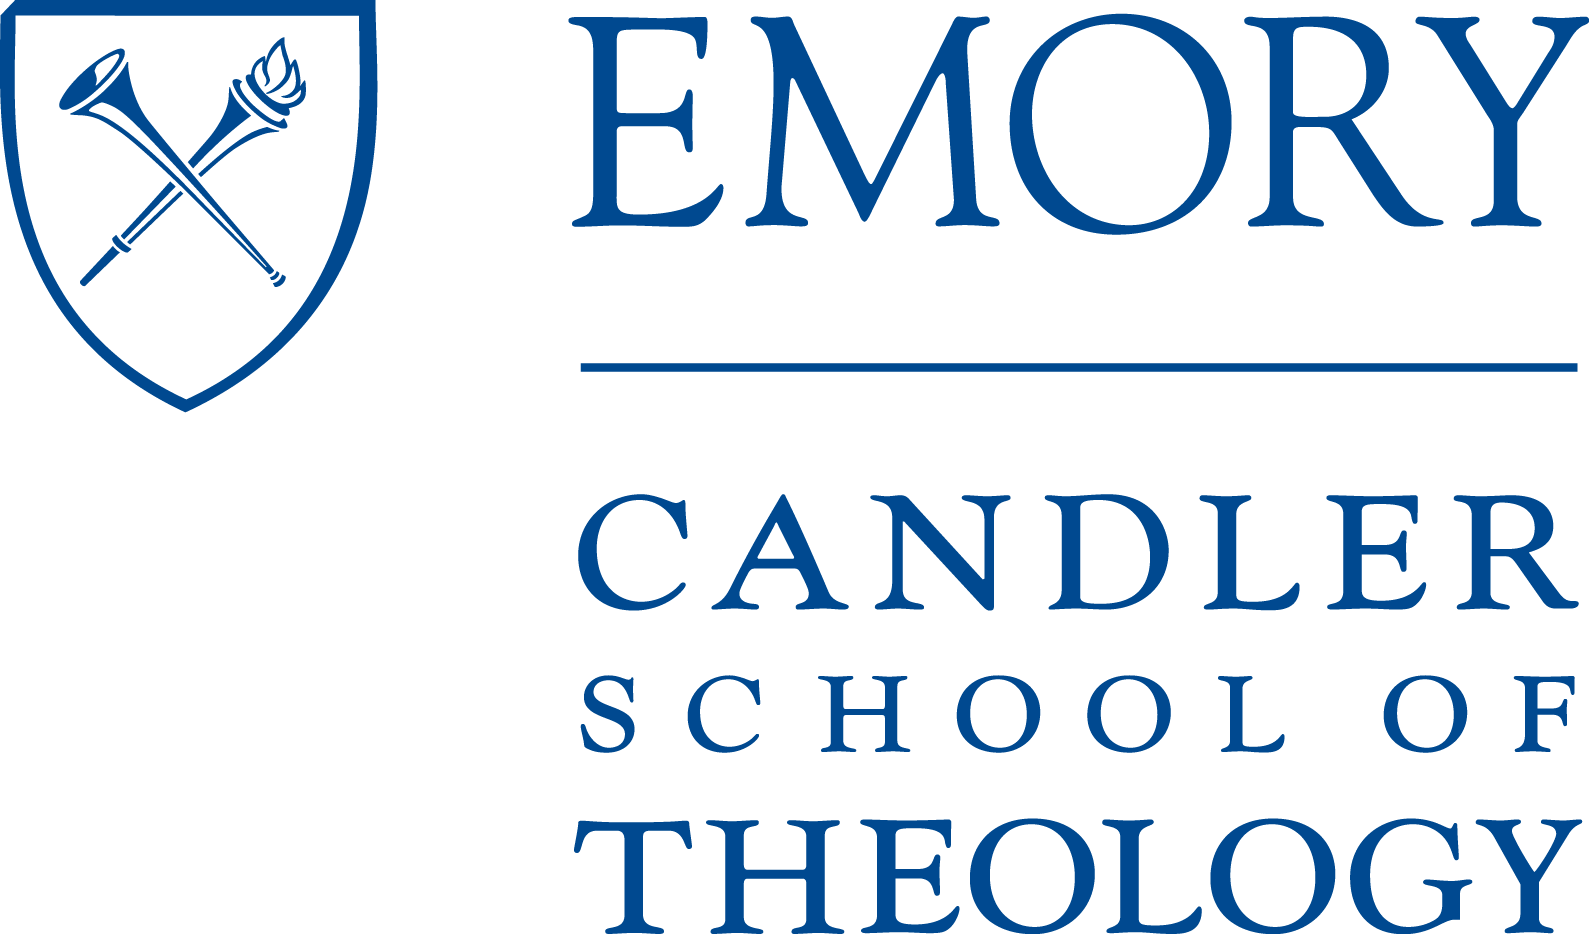 Emory University Candler School of Theology